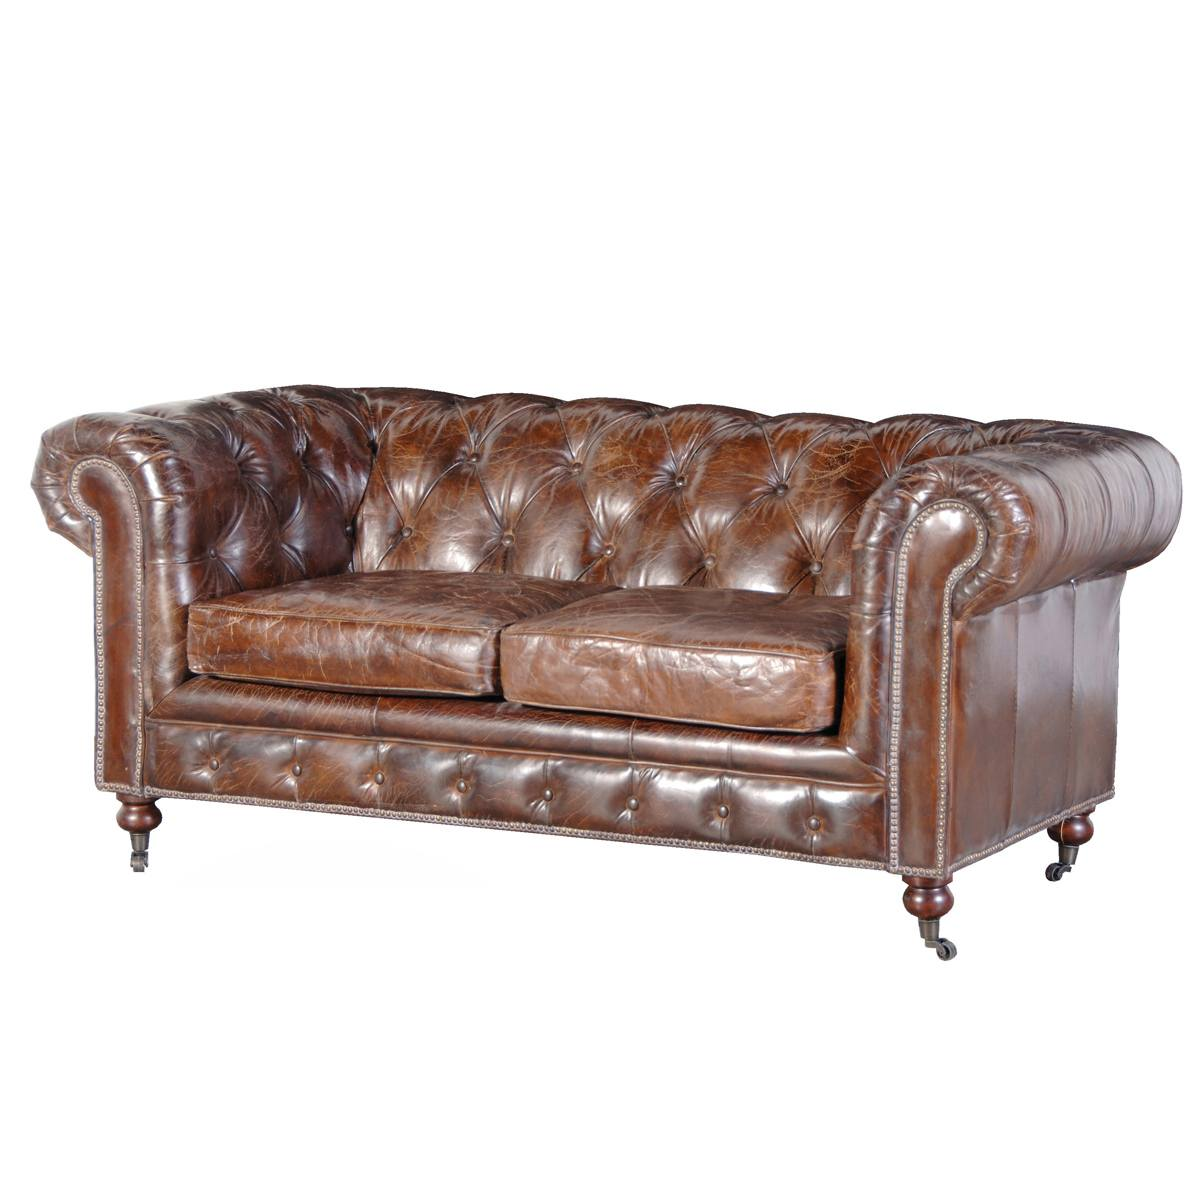 Chesterfield Sofa Cherished Chesterfield Vintage Brown Leather Sofa, French